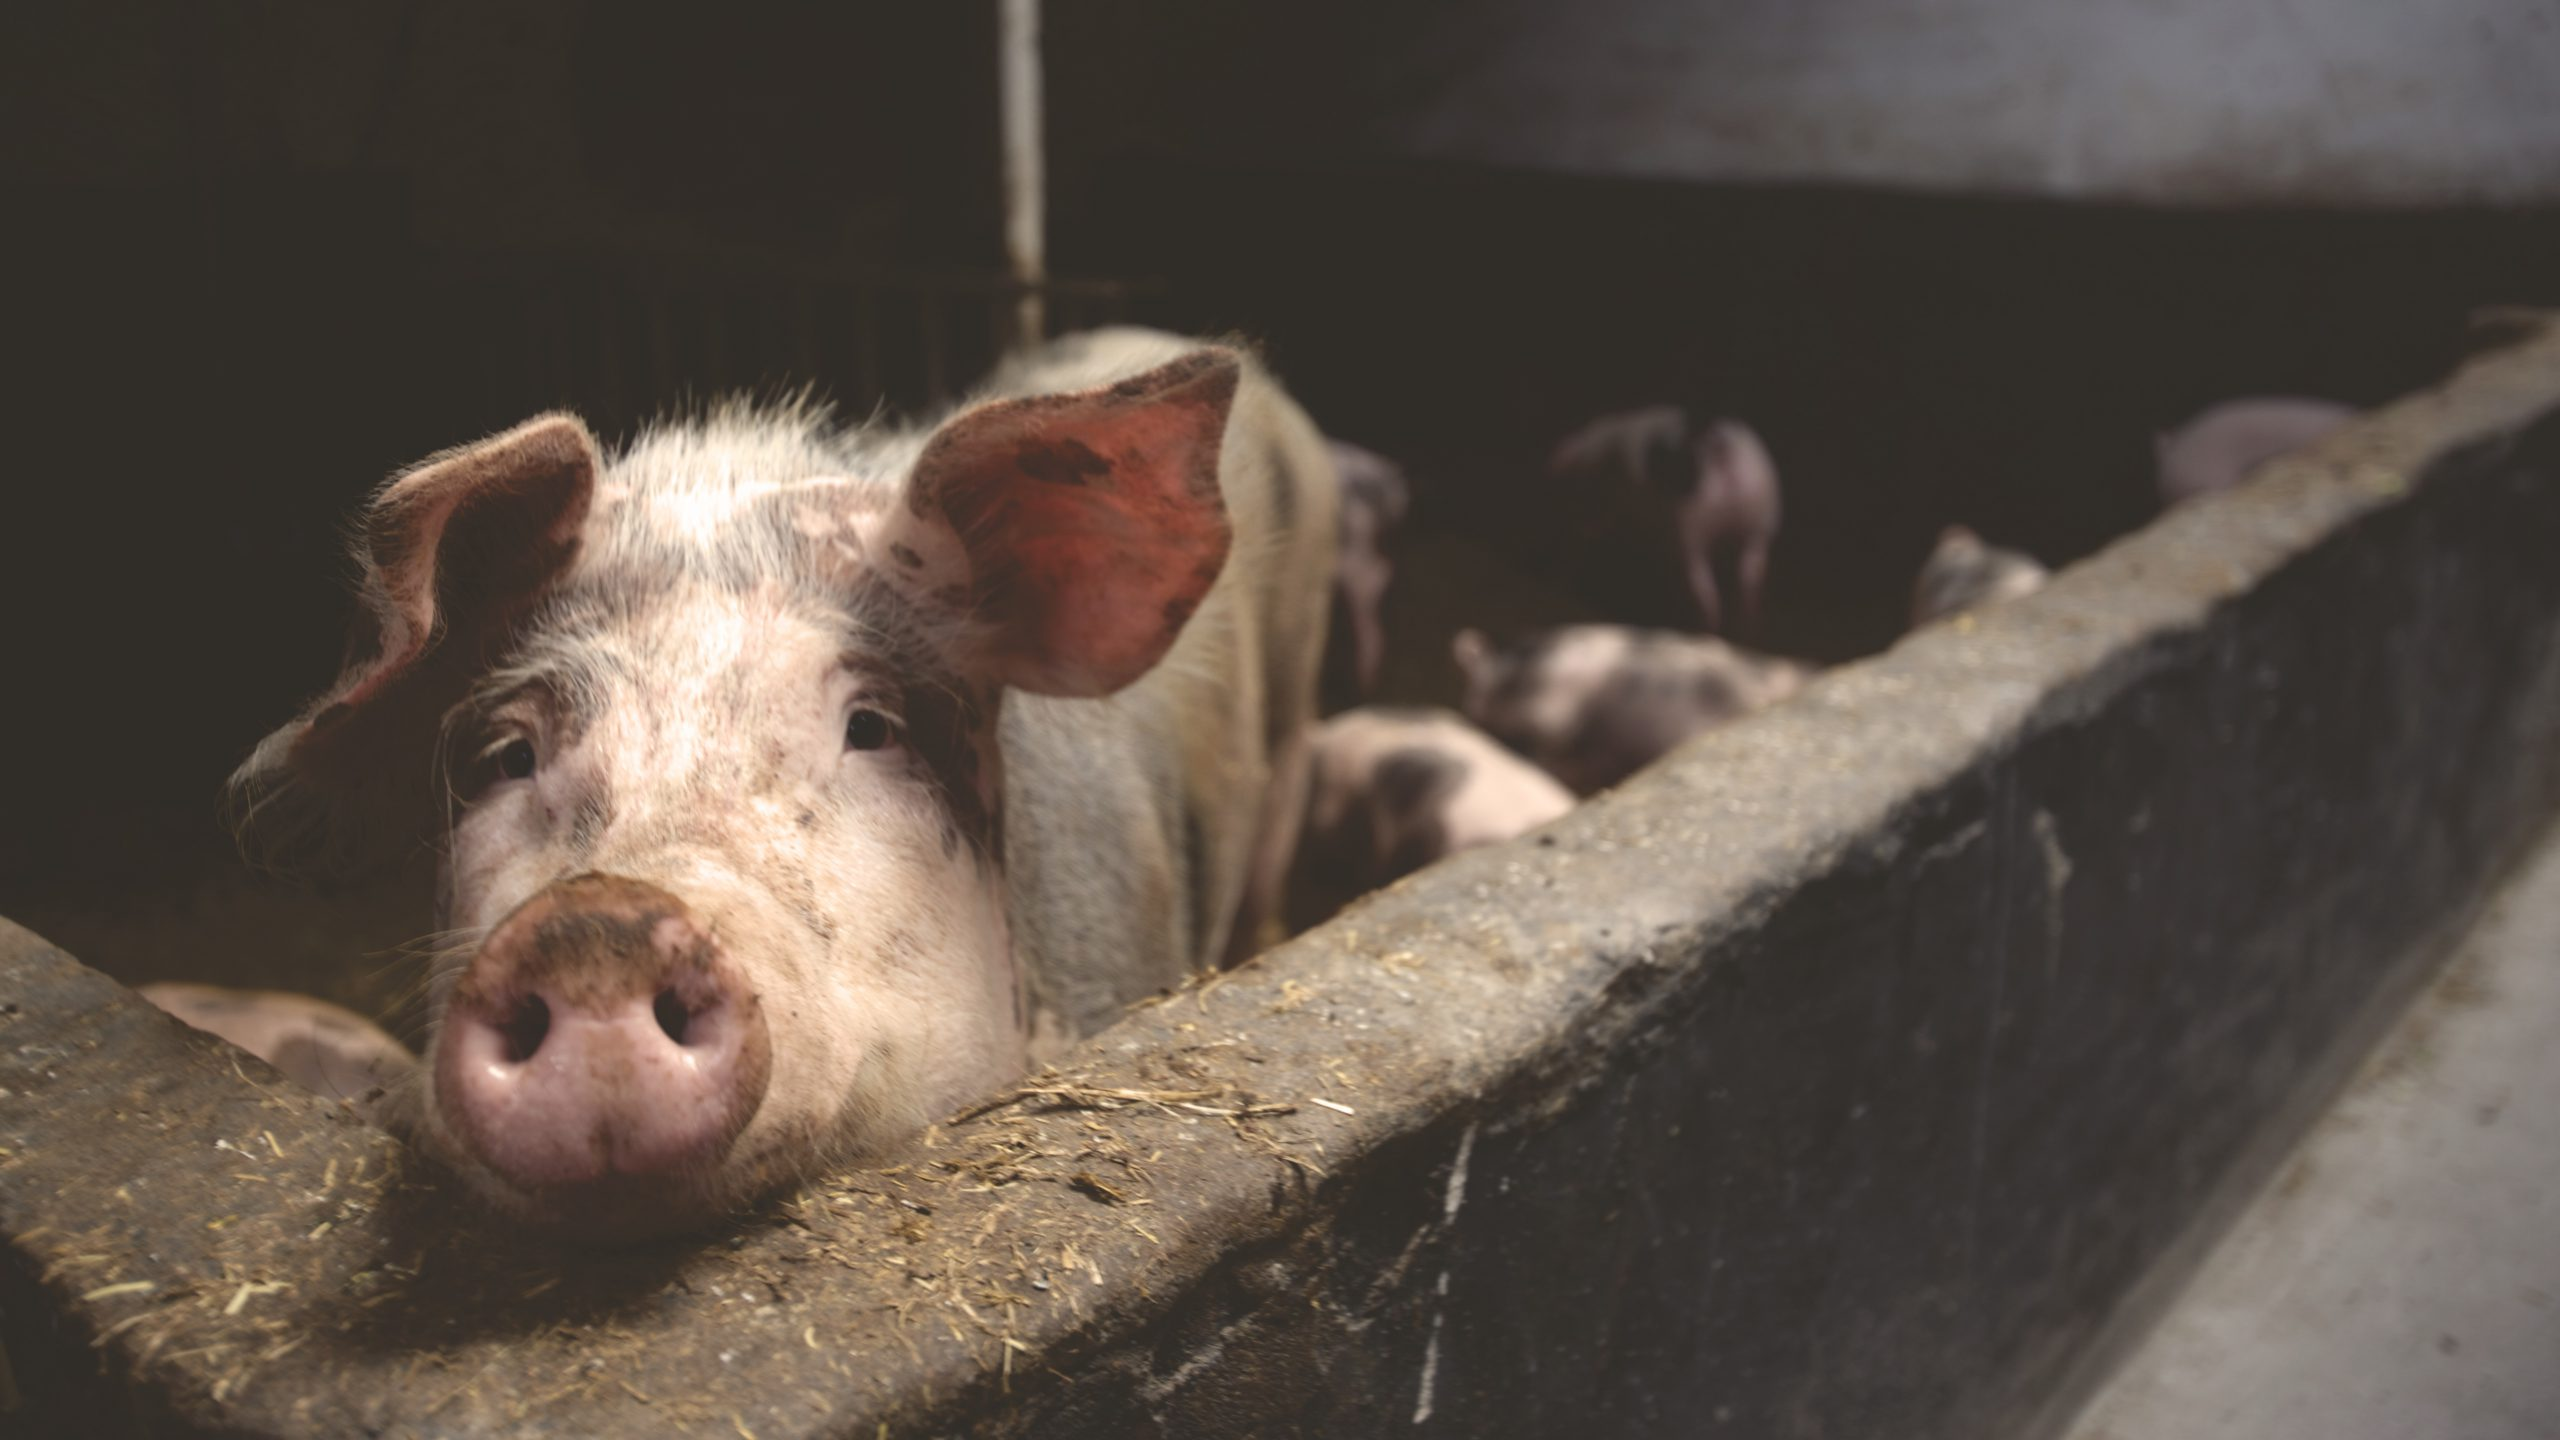 Recycled Japanese Liquor Make Pigs Happier, Healthier And Tastier